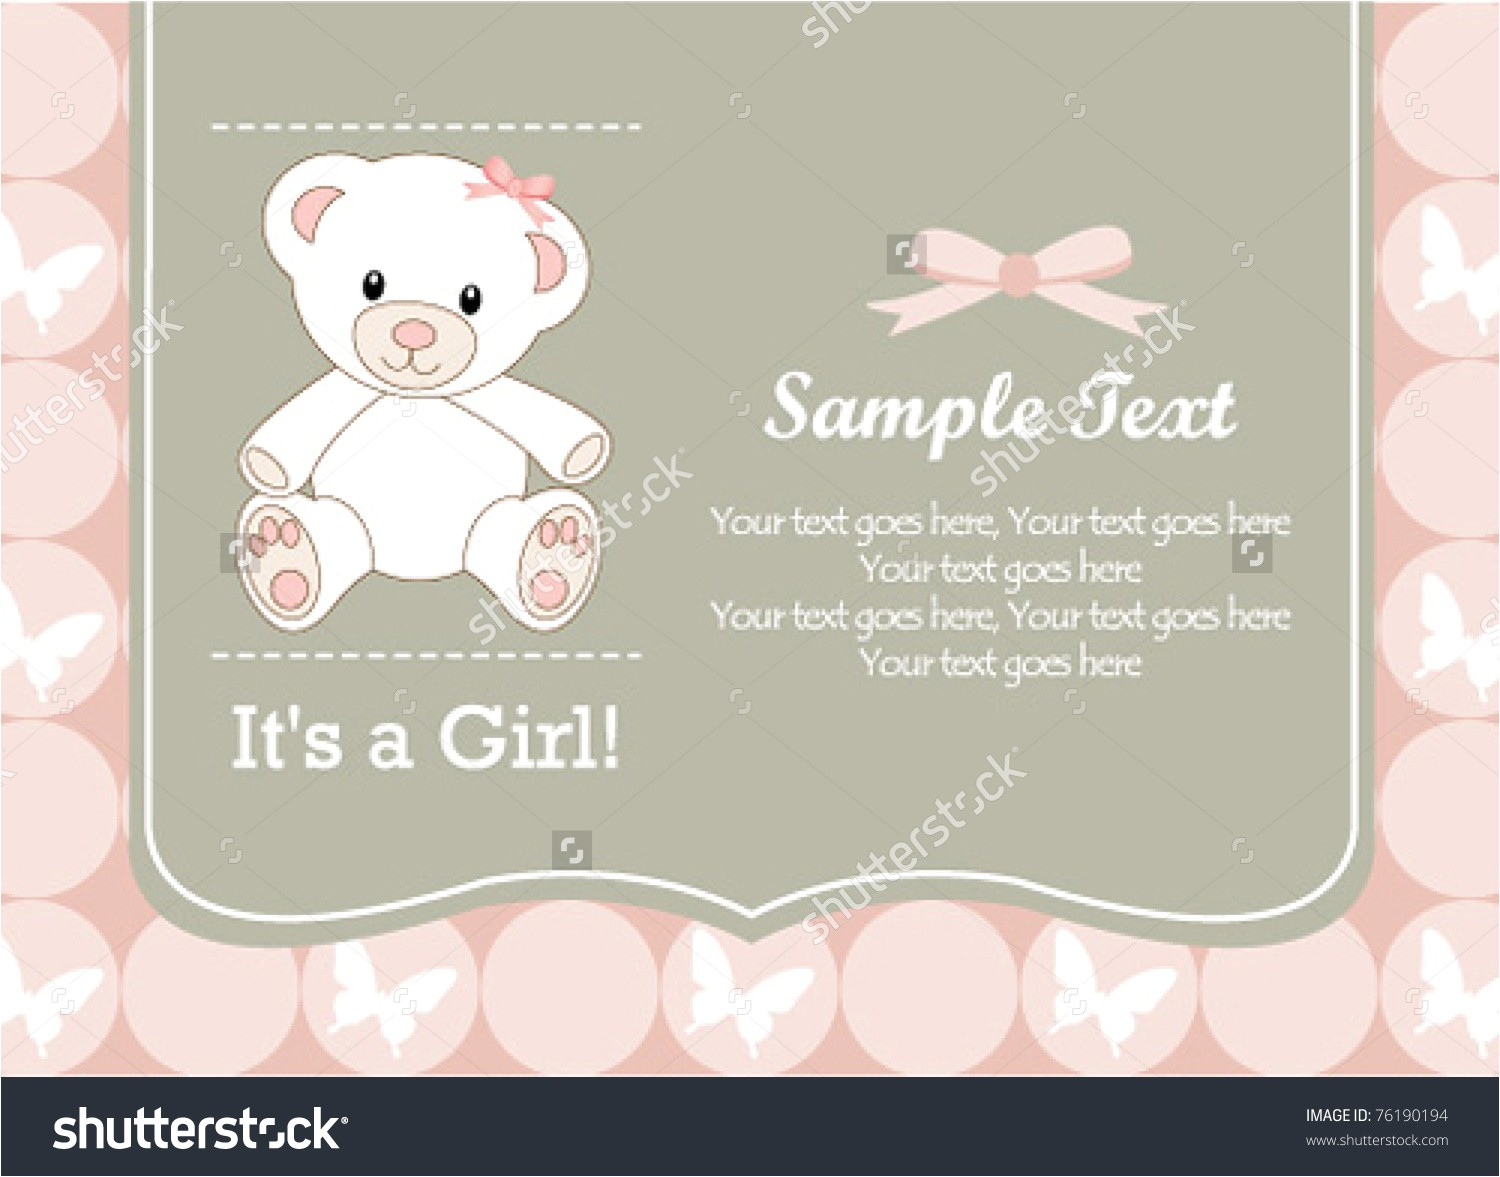 Cute Baby Shower Invitations for Girls Cute Baby Shower Invitations for Girls theruntime Com